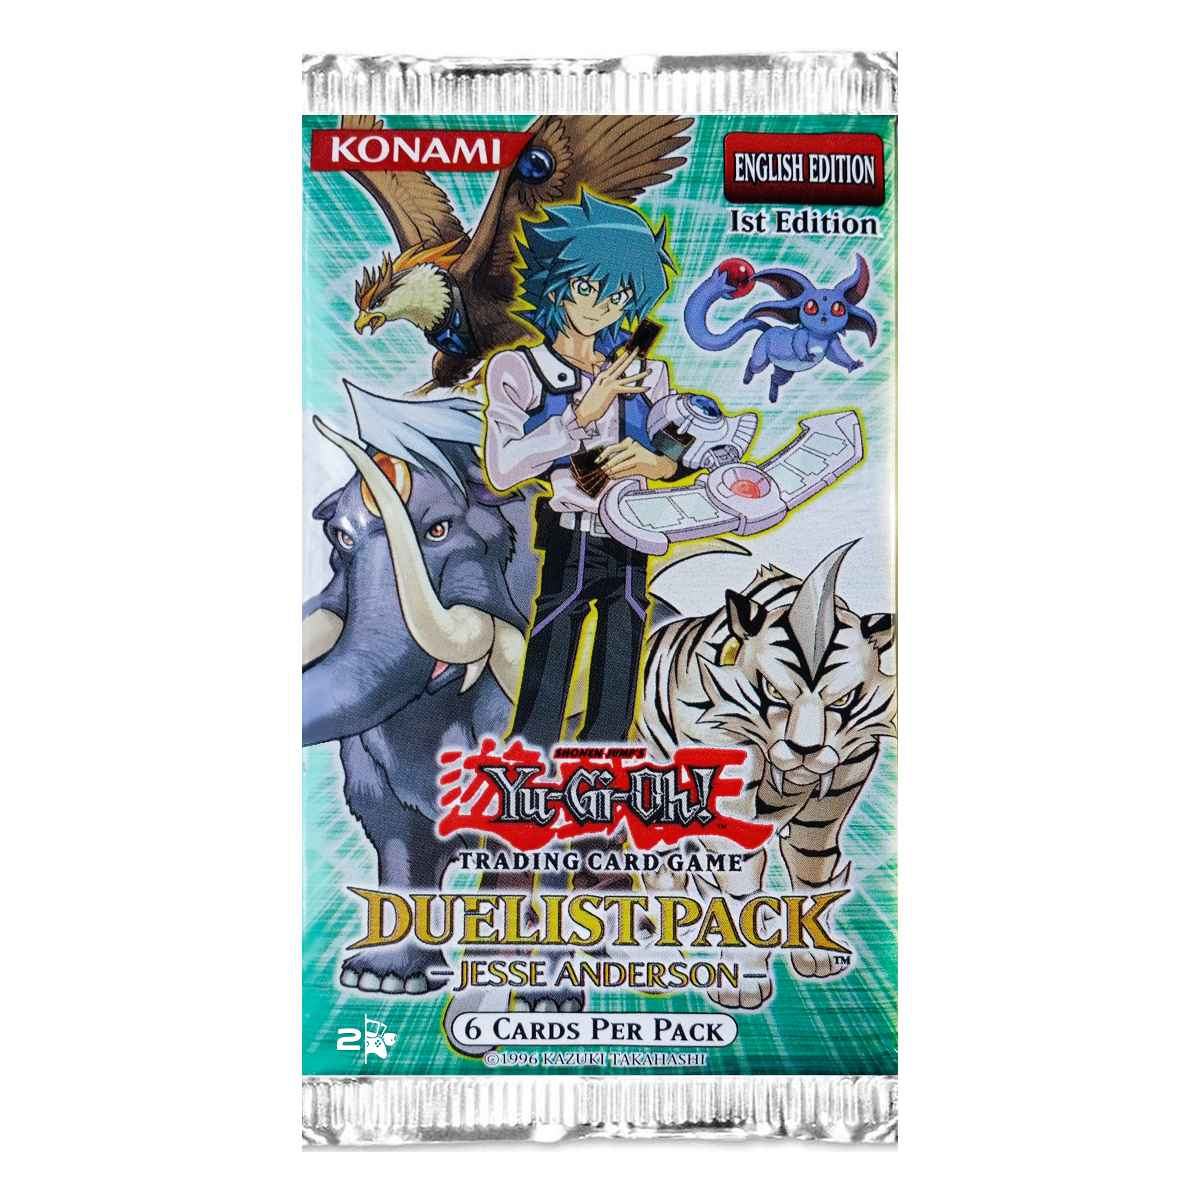 Yugioh Booster Duelist Pack Jesse Anderson GX